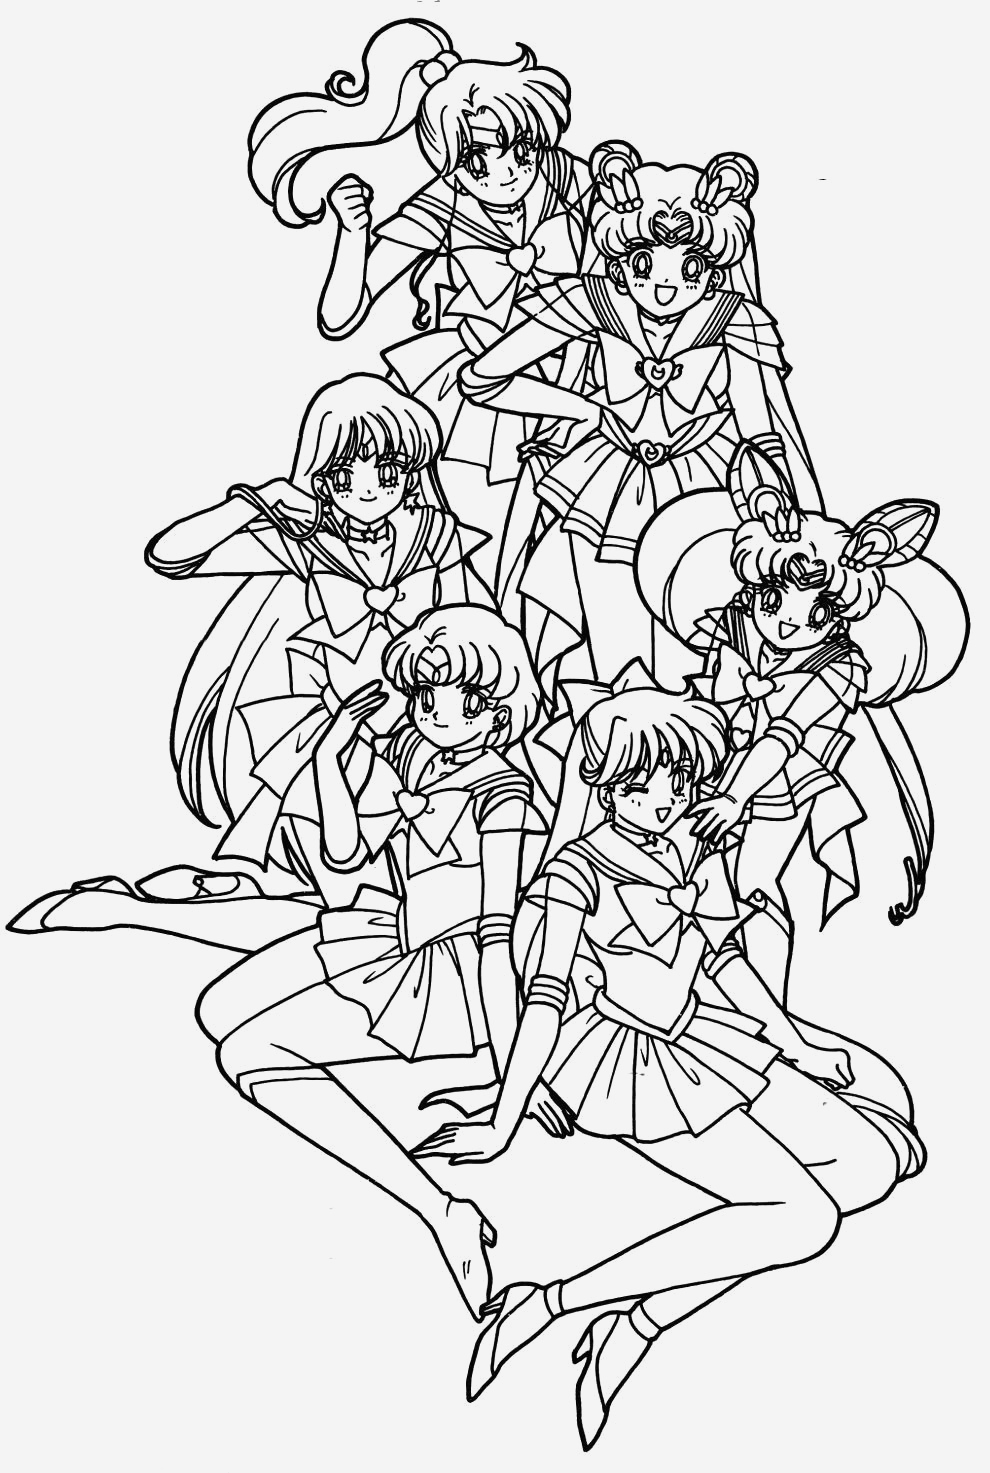 Coloriage Sailor Moon A Imprimer Inspirational Sailor Moon Really Like with Her Friend Coloring Pages Of Coloriage Sailor Moon A Imprimer